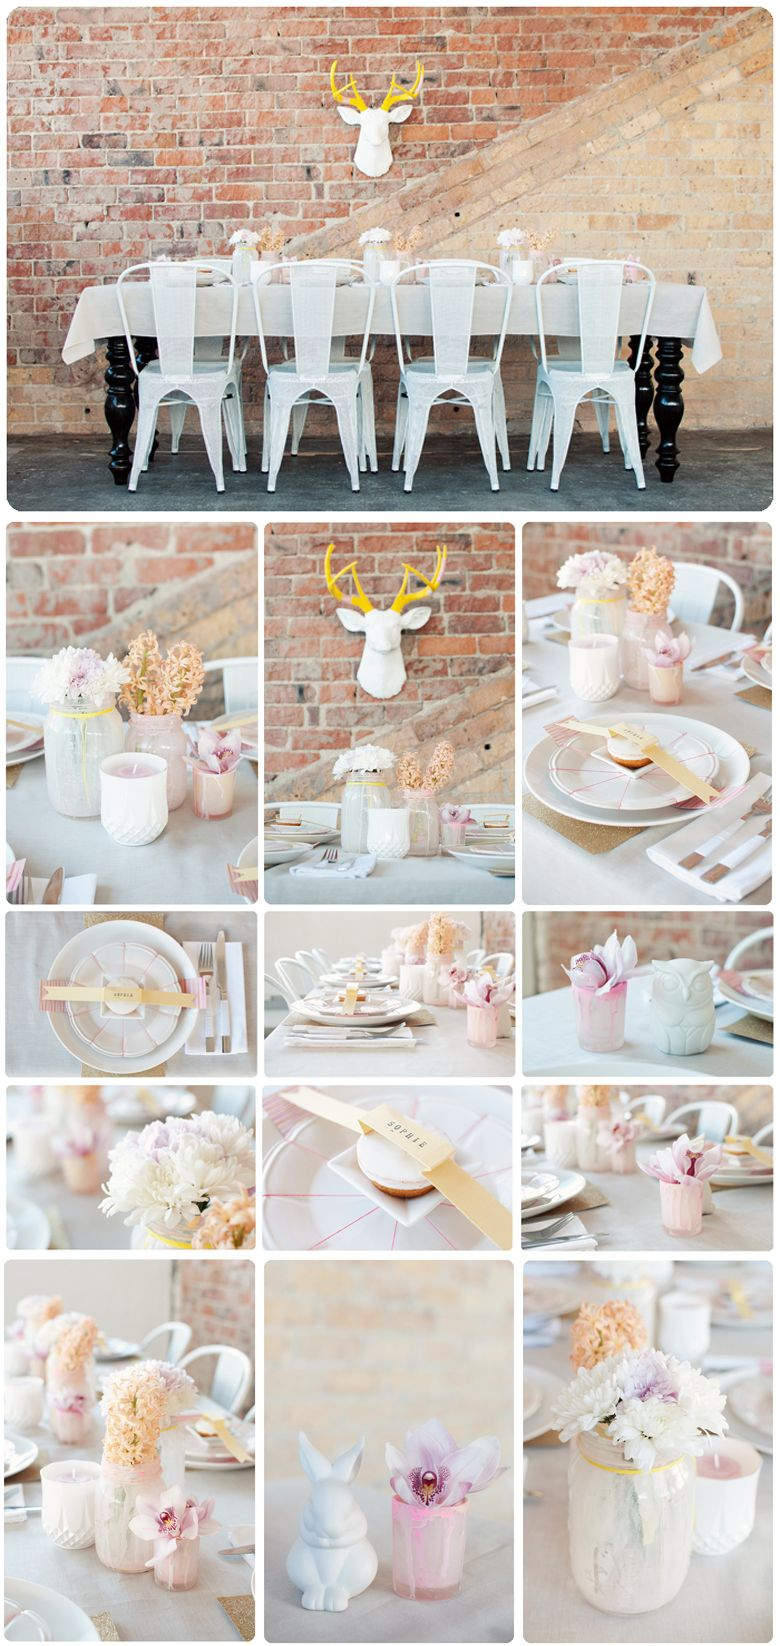 All white and gold wedding decor  Soft Pastel and Gold table setting by All The Frills  PASTEL HUES